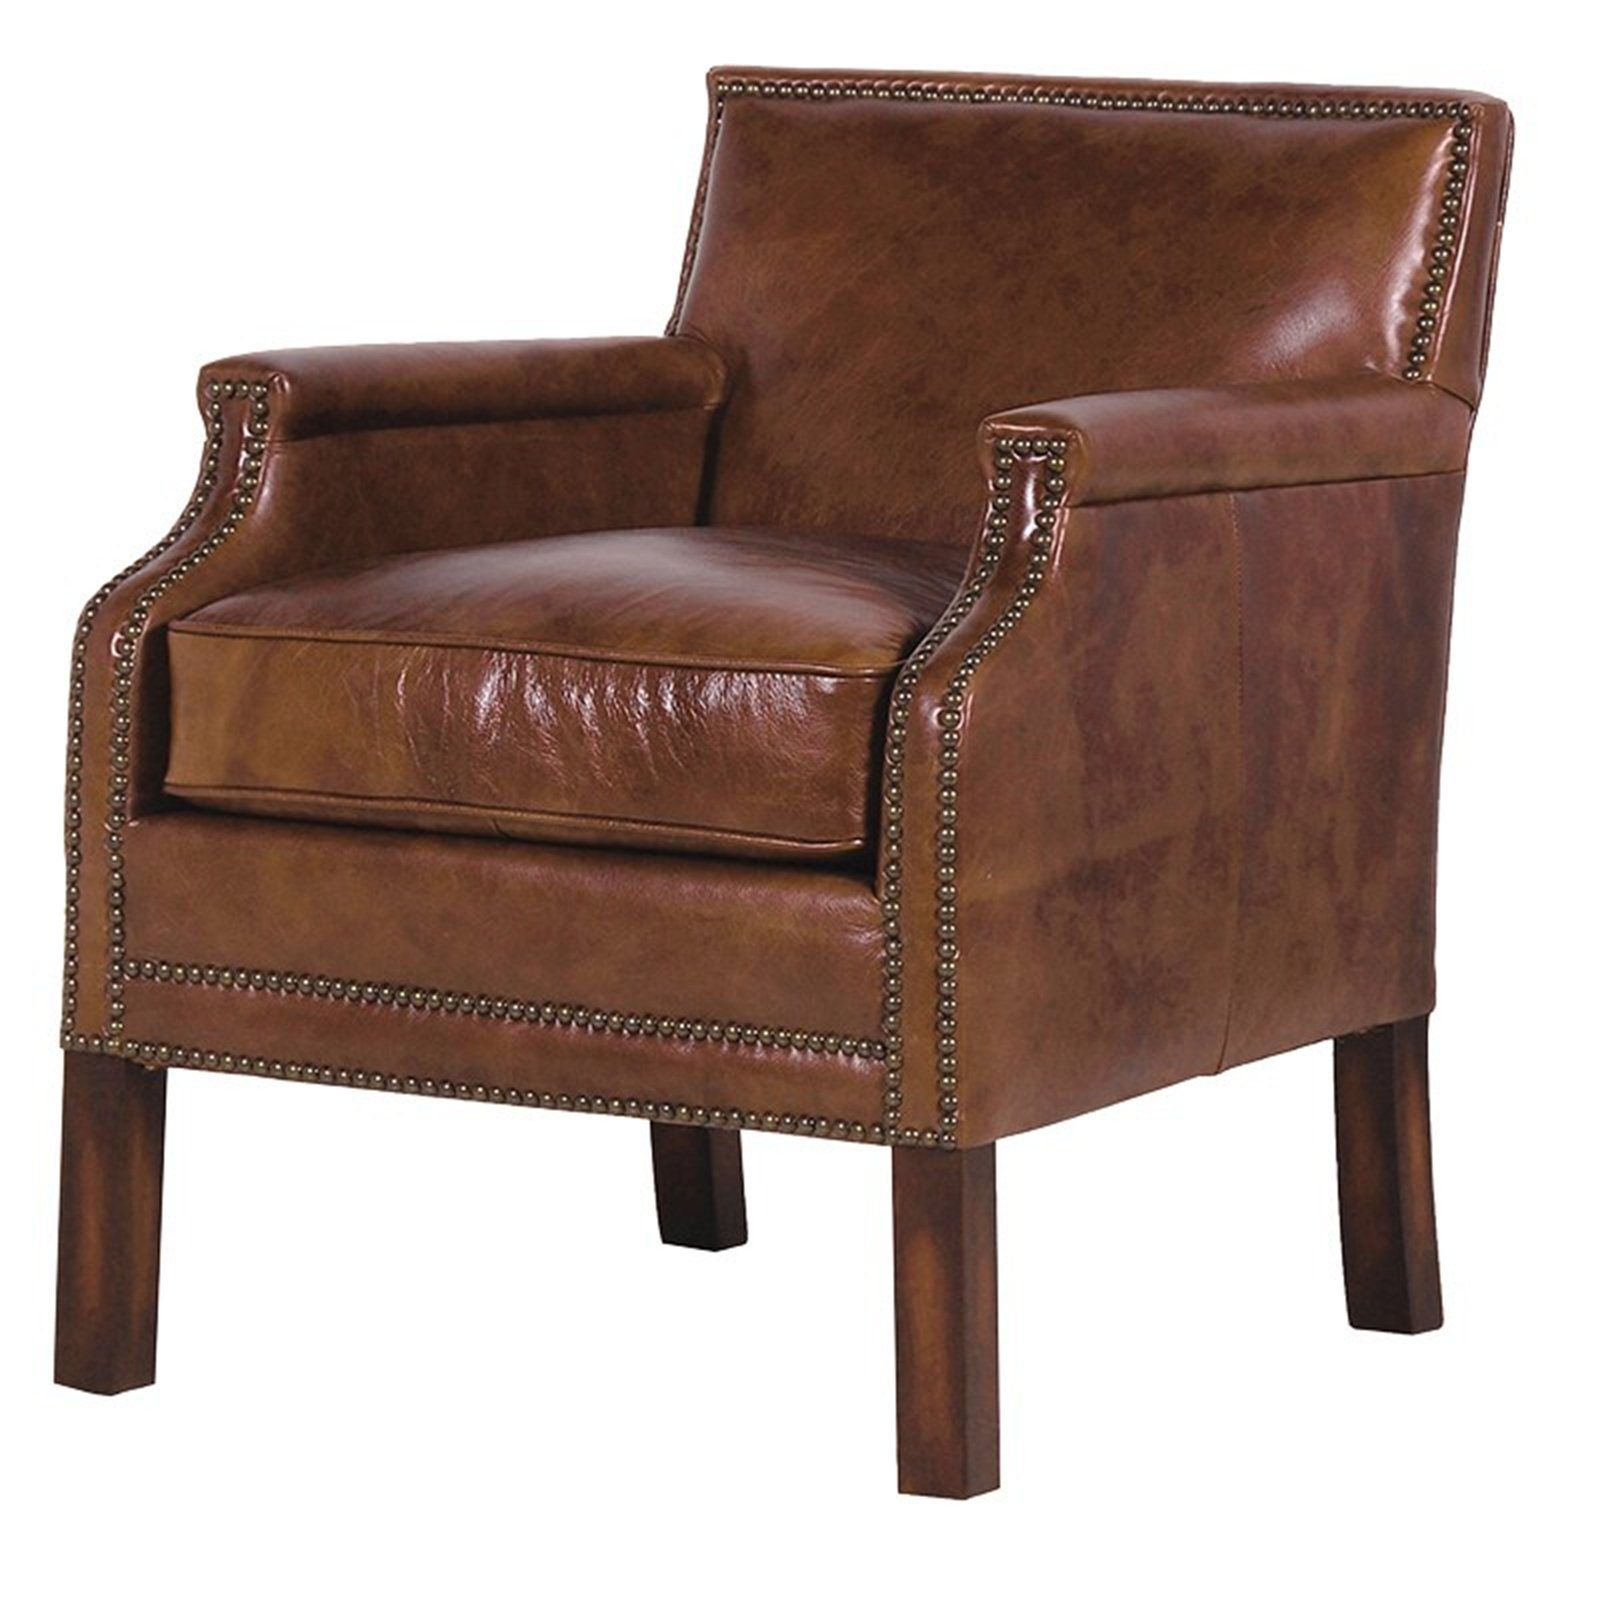 Amazing Italian Leather Chairs Dining Patios Plumbing Contractors General Contractors